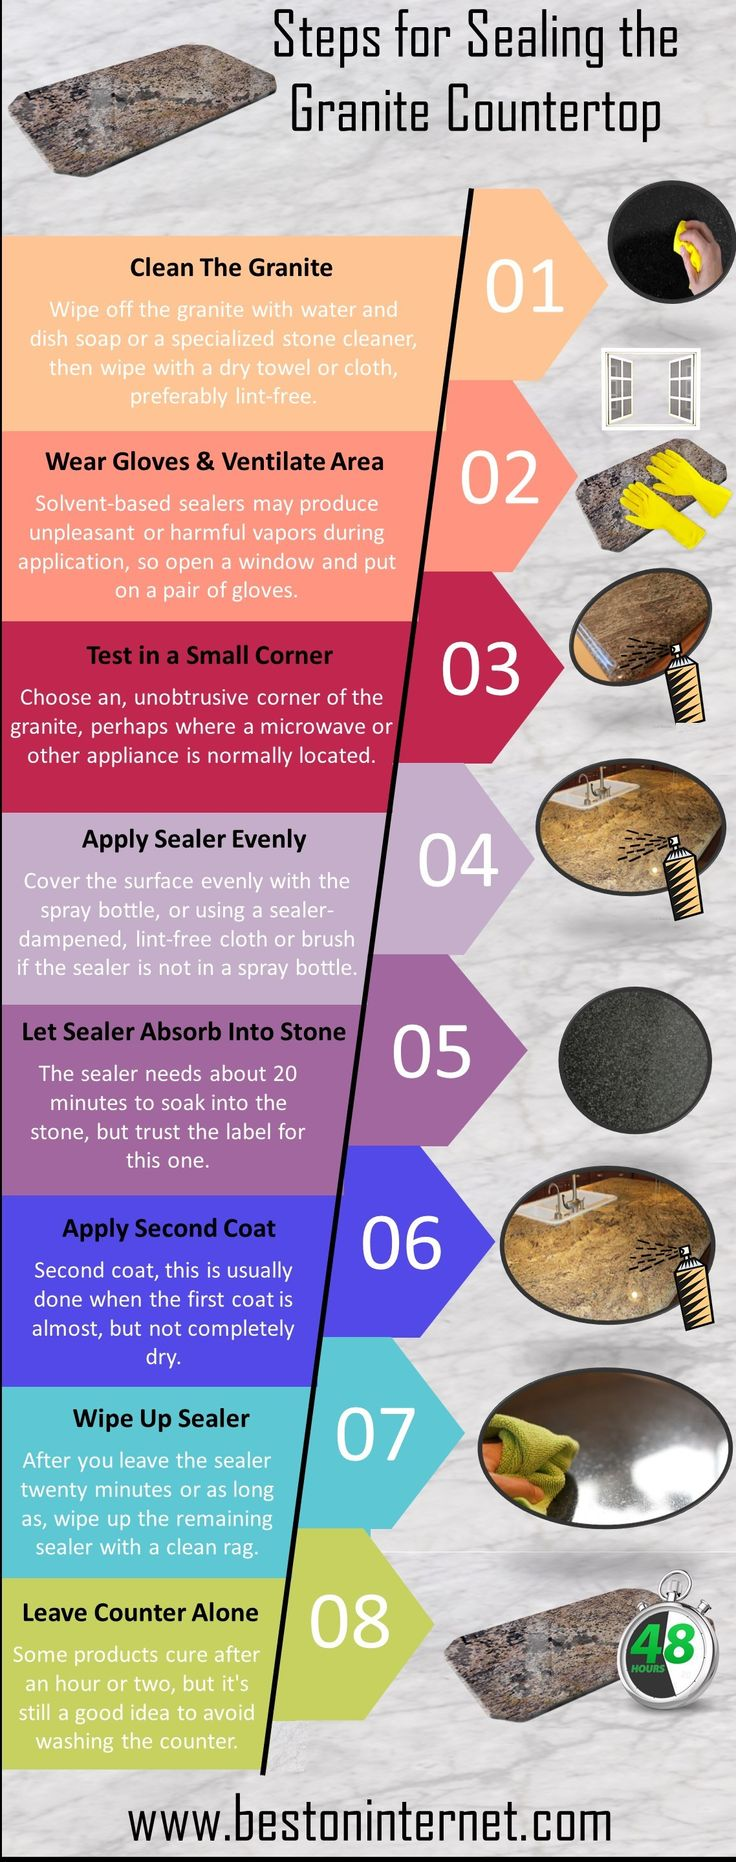 How to get beeswax off a counter top or table surface 5 steps - In This Infographic I Have Given Steps For Sealing The Granitecountertop If You Granite Countertophome